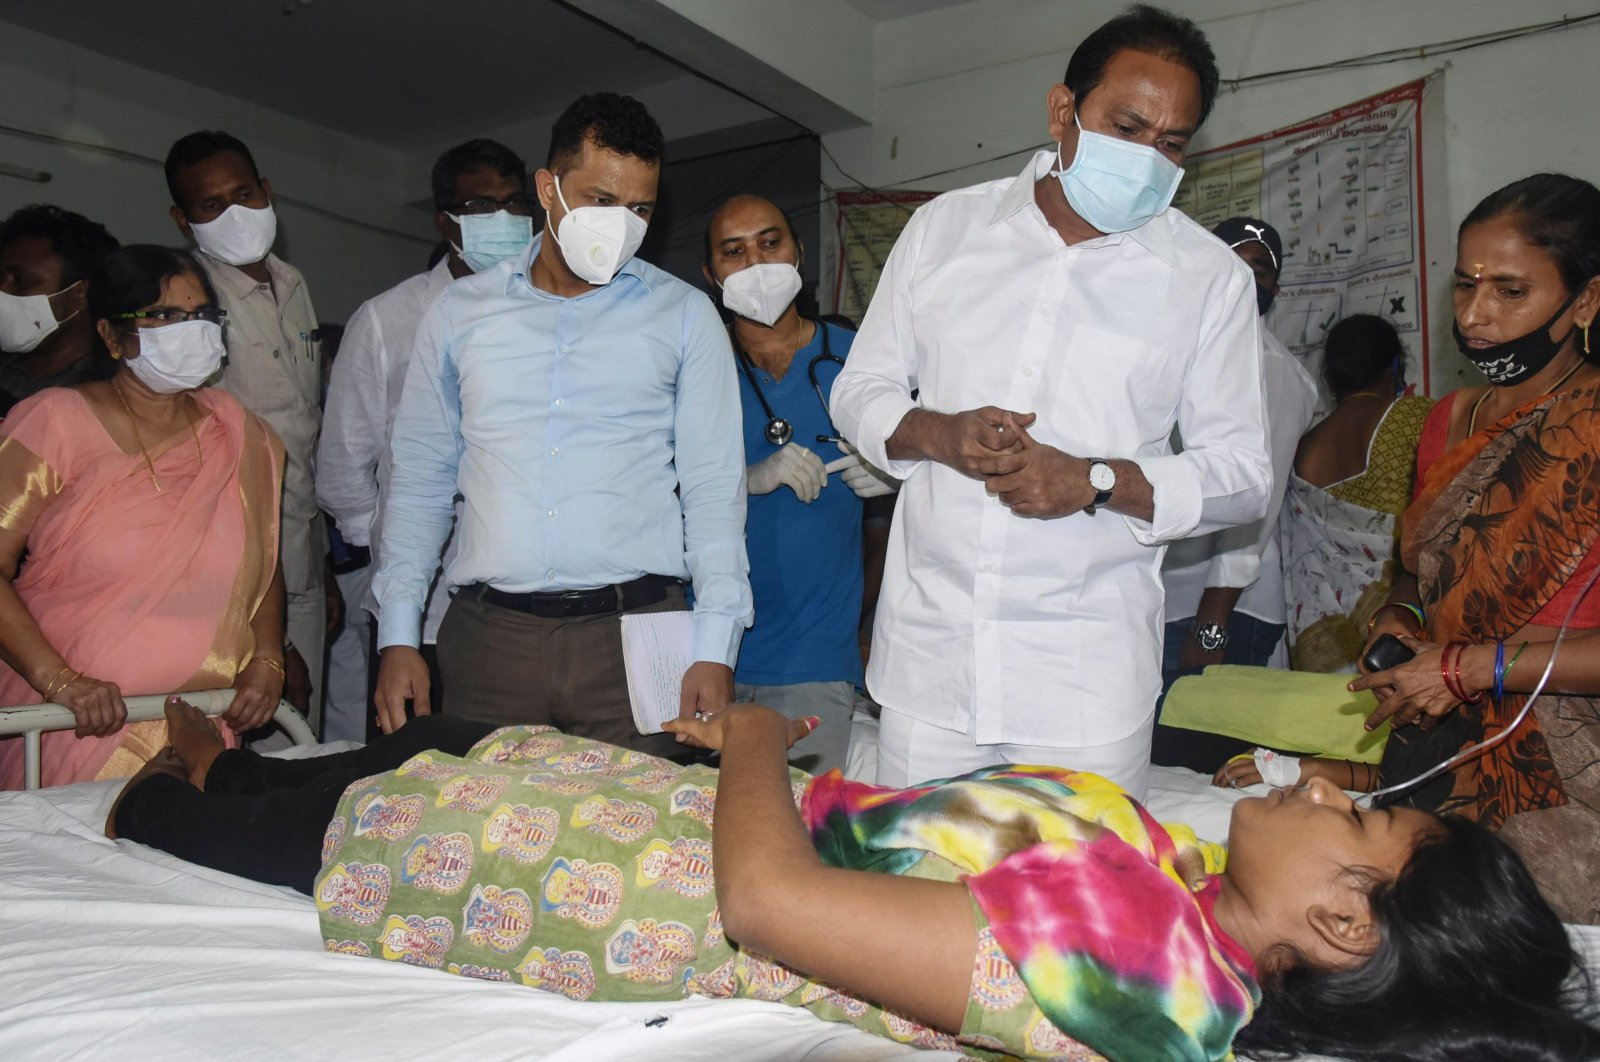 Andhra Pradesh Health Minister Alla Nani (2nd R) visits patients receiving medical care for a mystery illness at a goverment hospital in Eluru, India, Dec. 6, 2020. (Public Relation Department of Government of Andhra Pradesh / AFP)